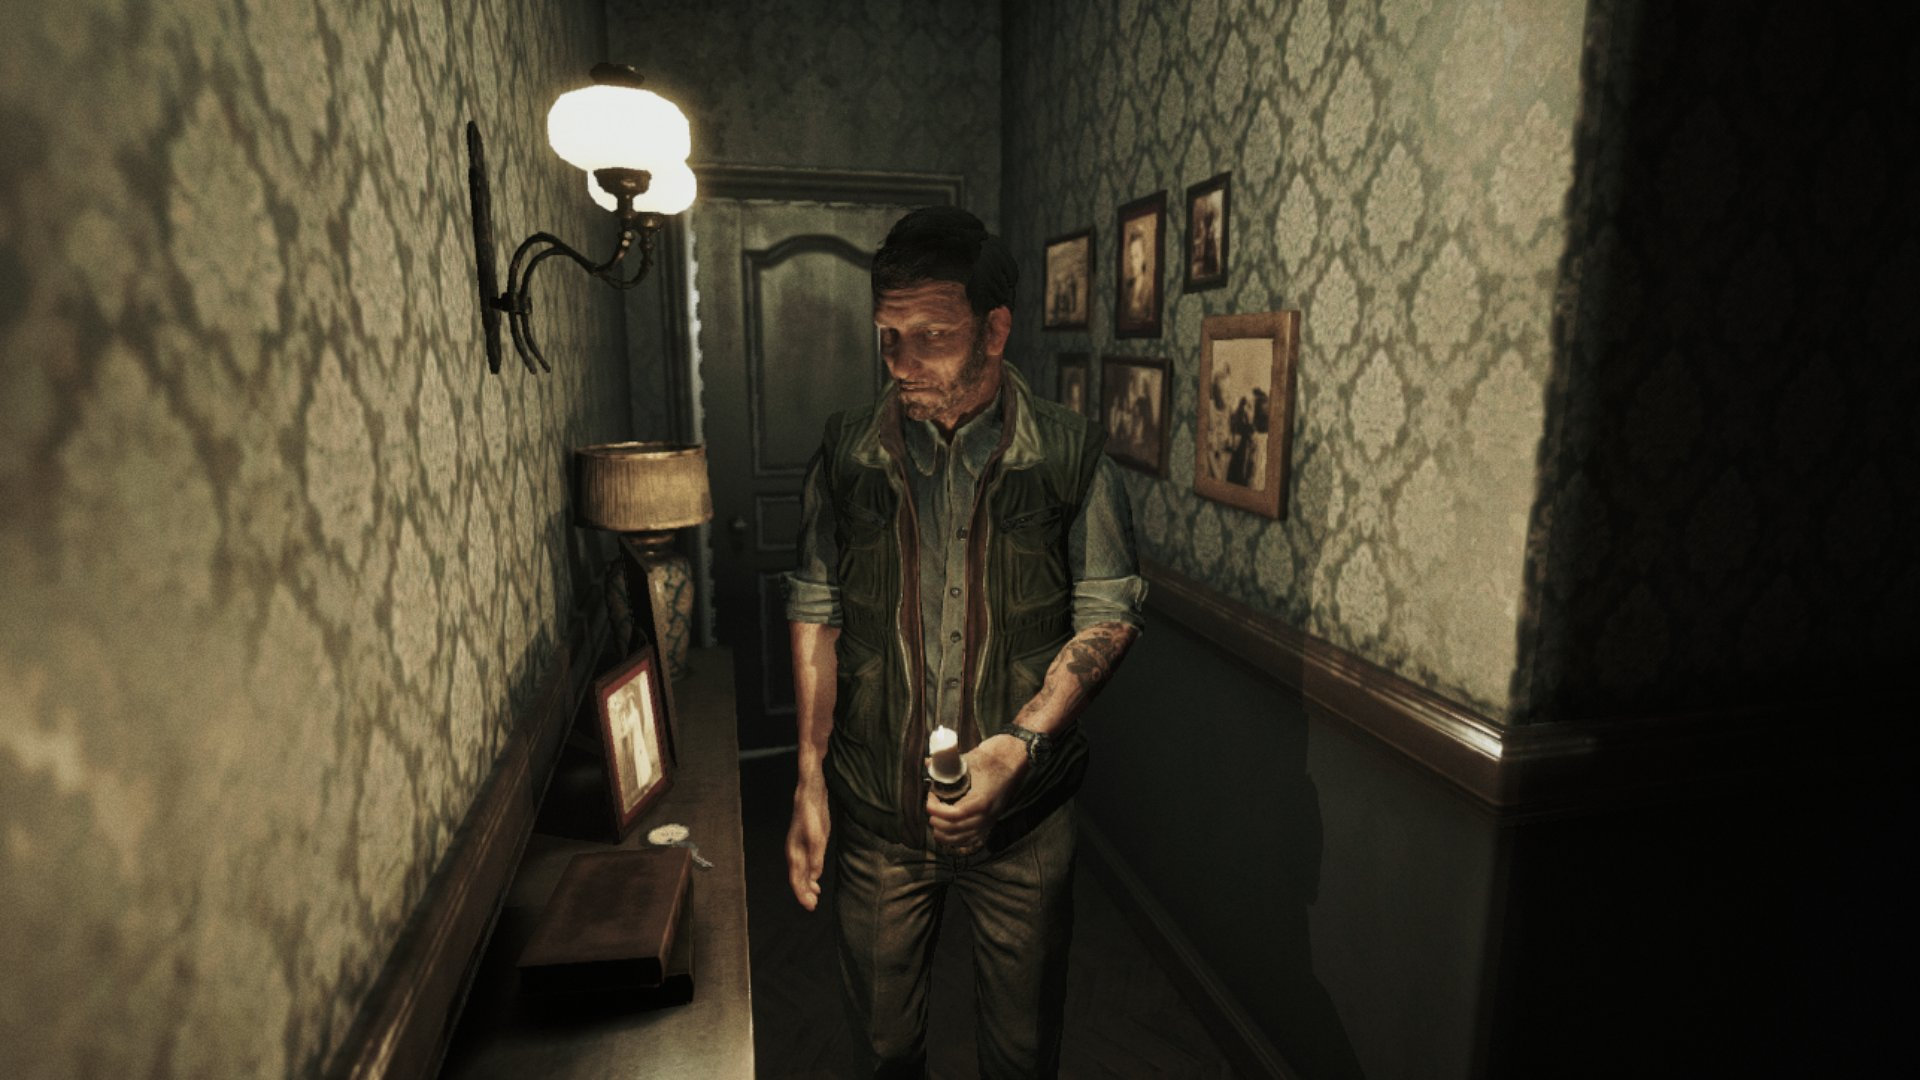 A screenshot from Song of Horror, a man exploring a hallway lined with framed photographs.